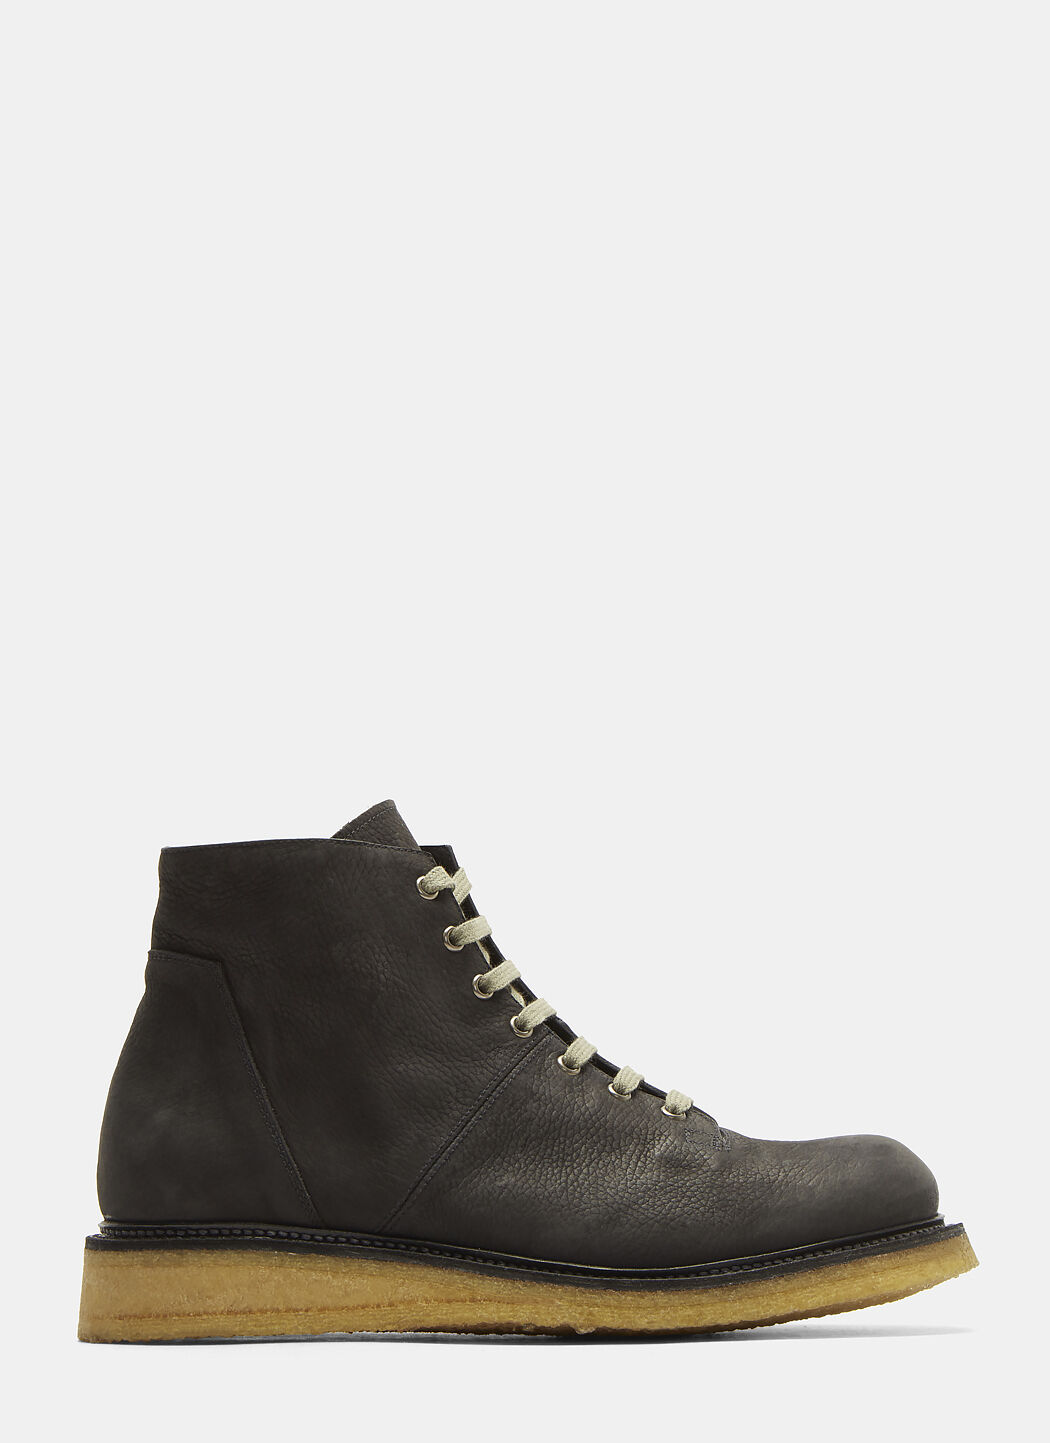 cheap sale store Rick Owens Monkey boots cheap sale visit 6IwuP